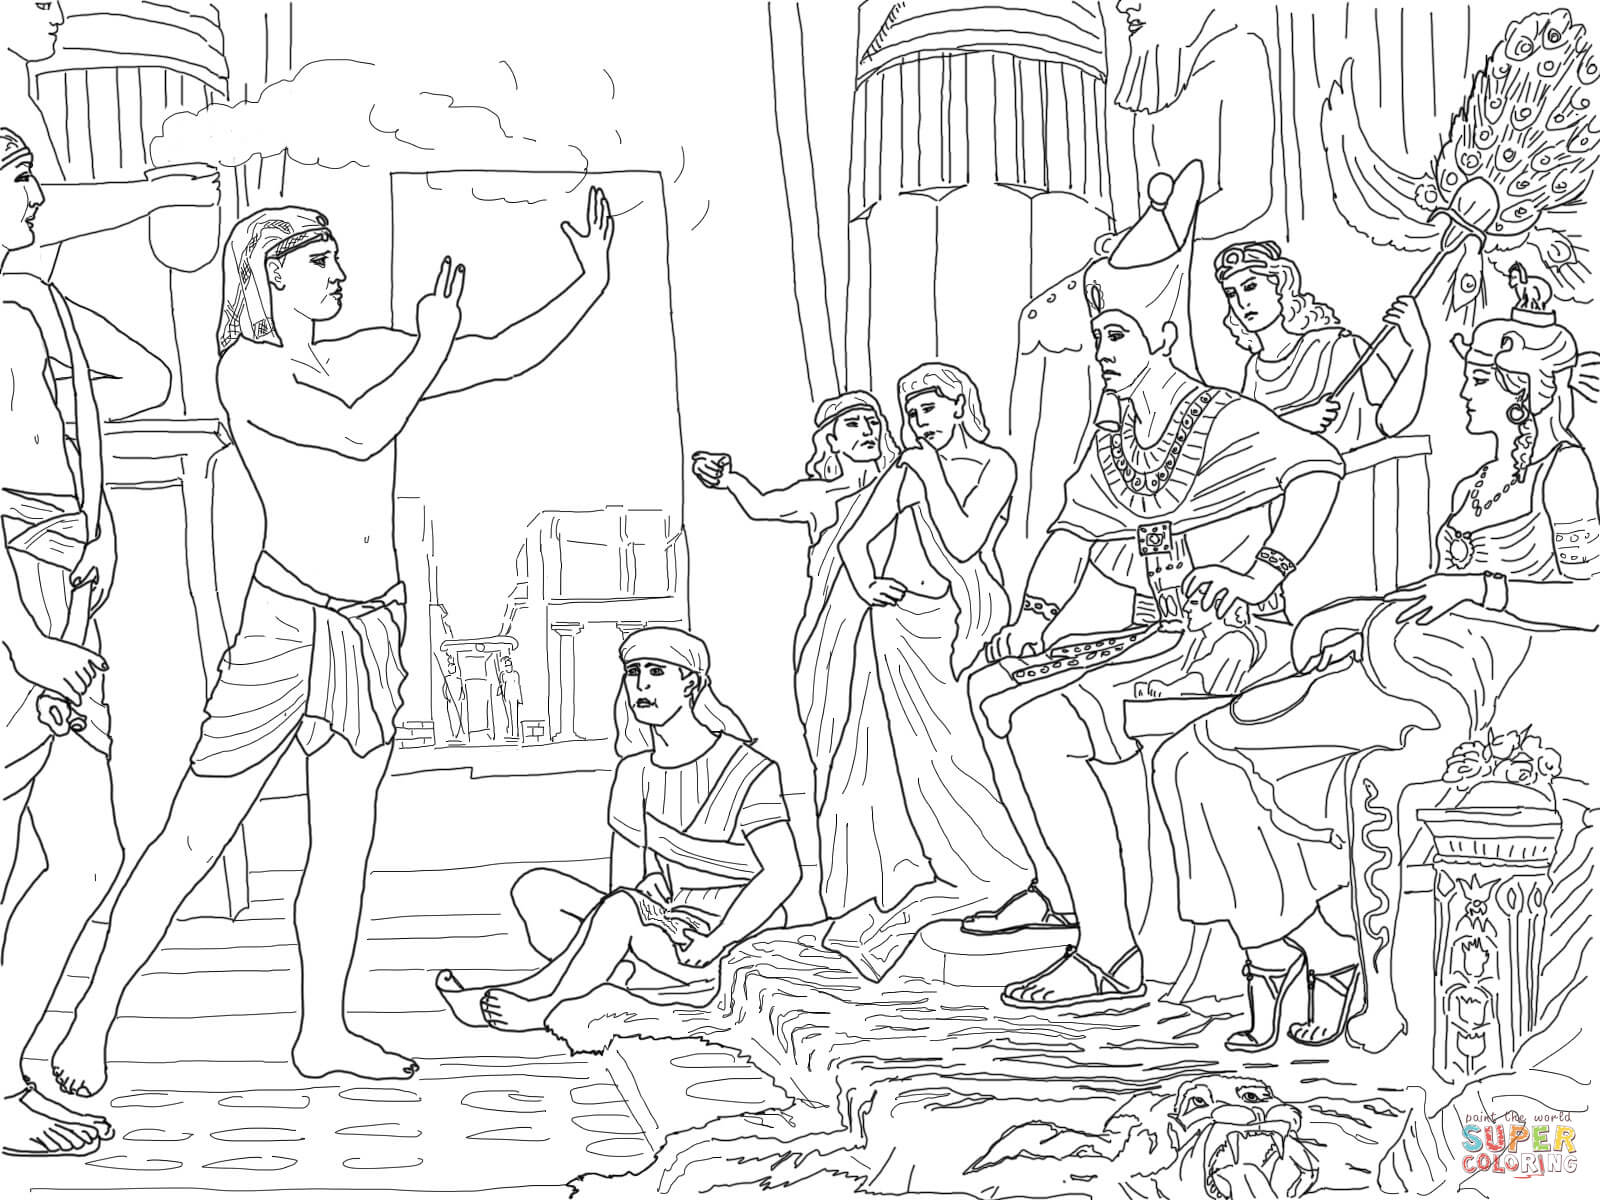 joseph the dreamer coloring pages joseph in egypt coloring pages coloring home the joseph pages dreamer coloring